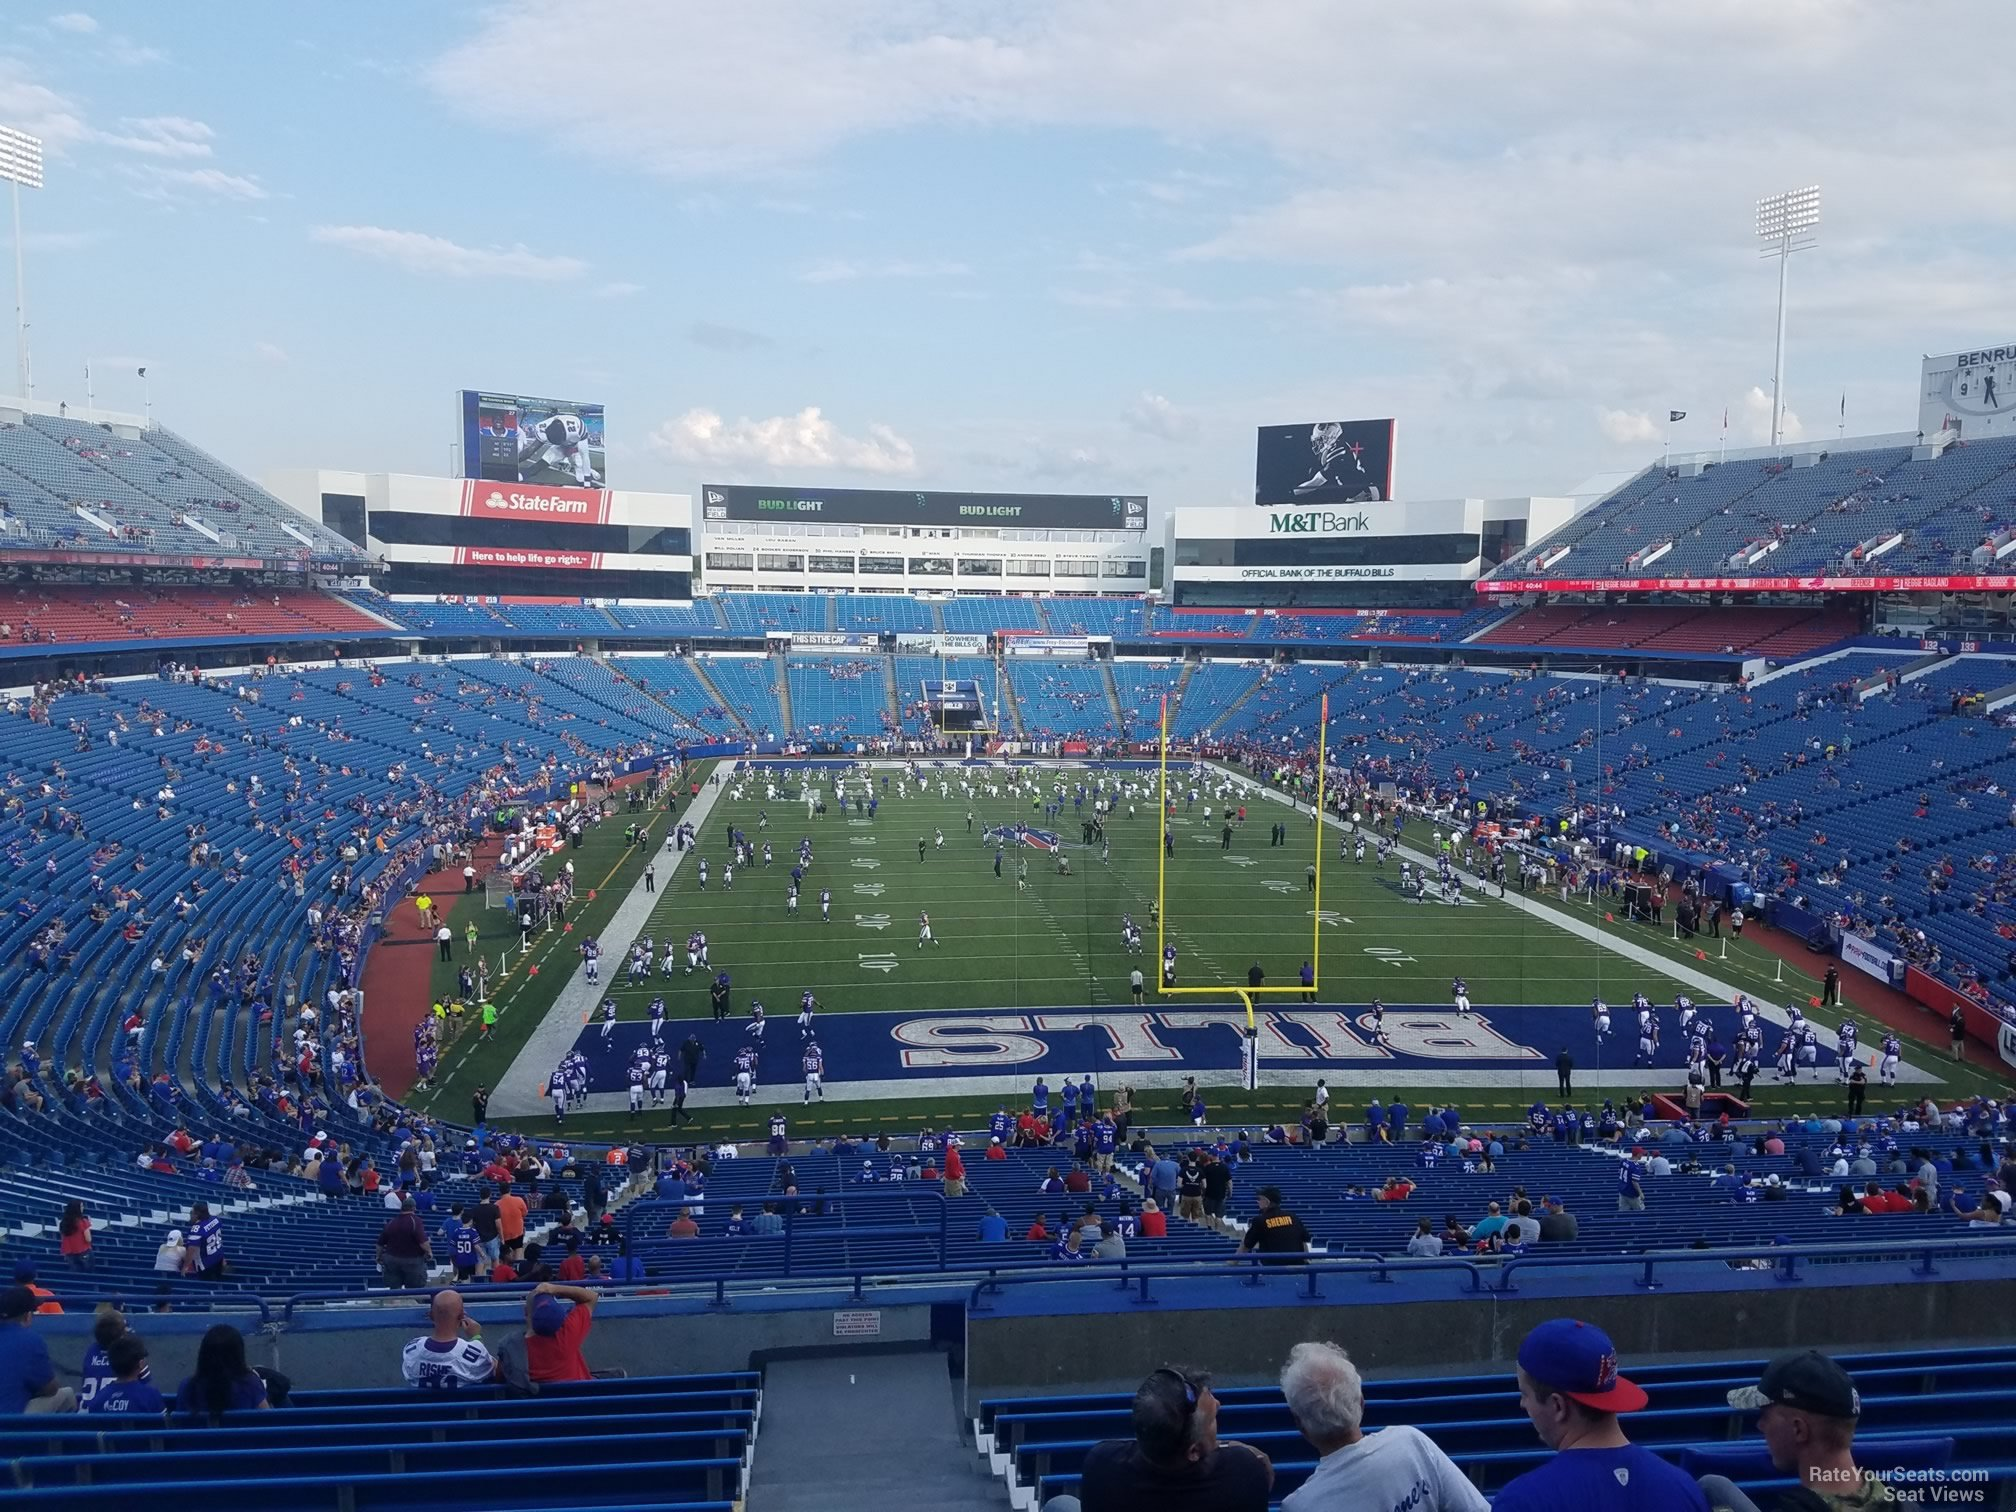 Standing Room Only seat view